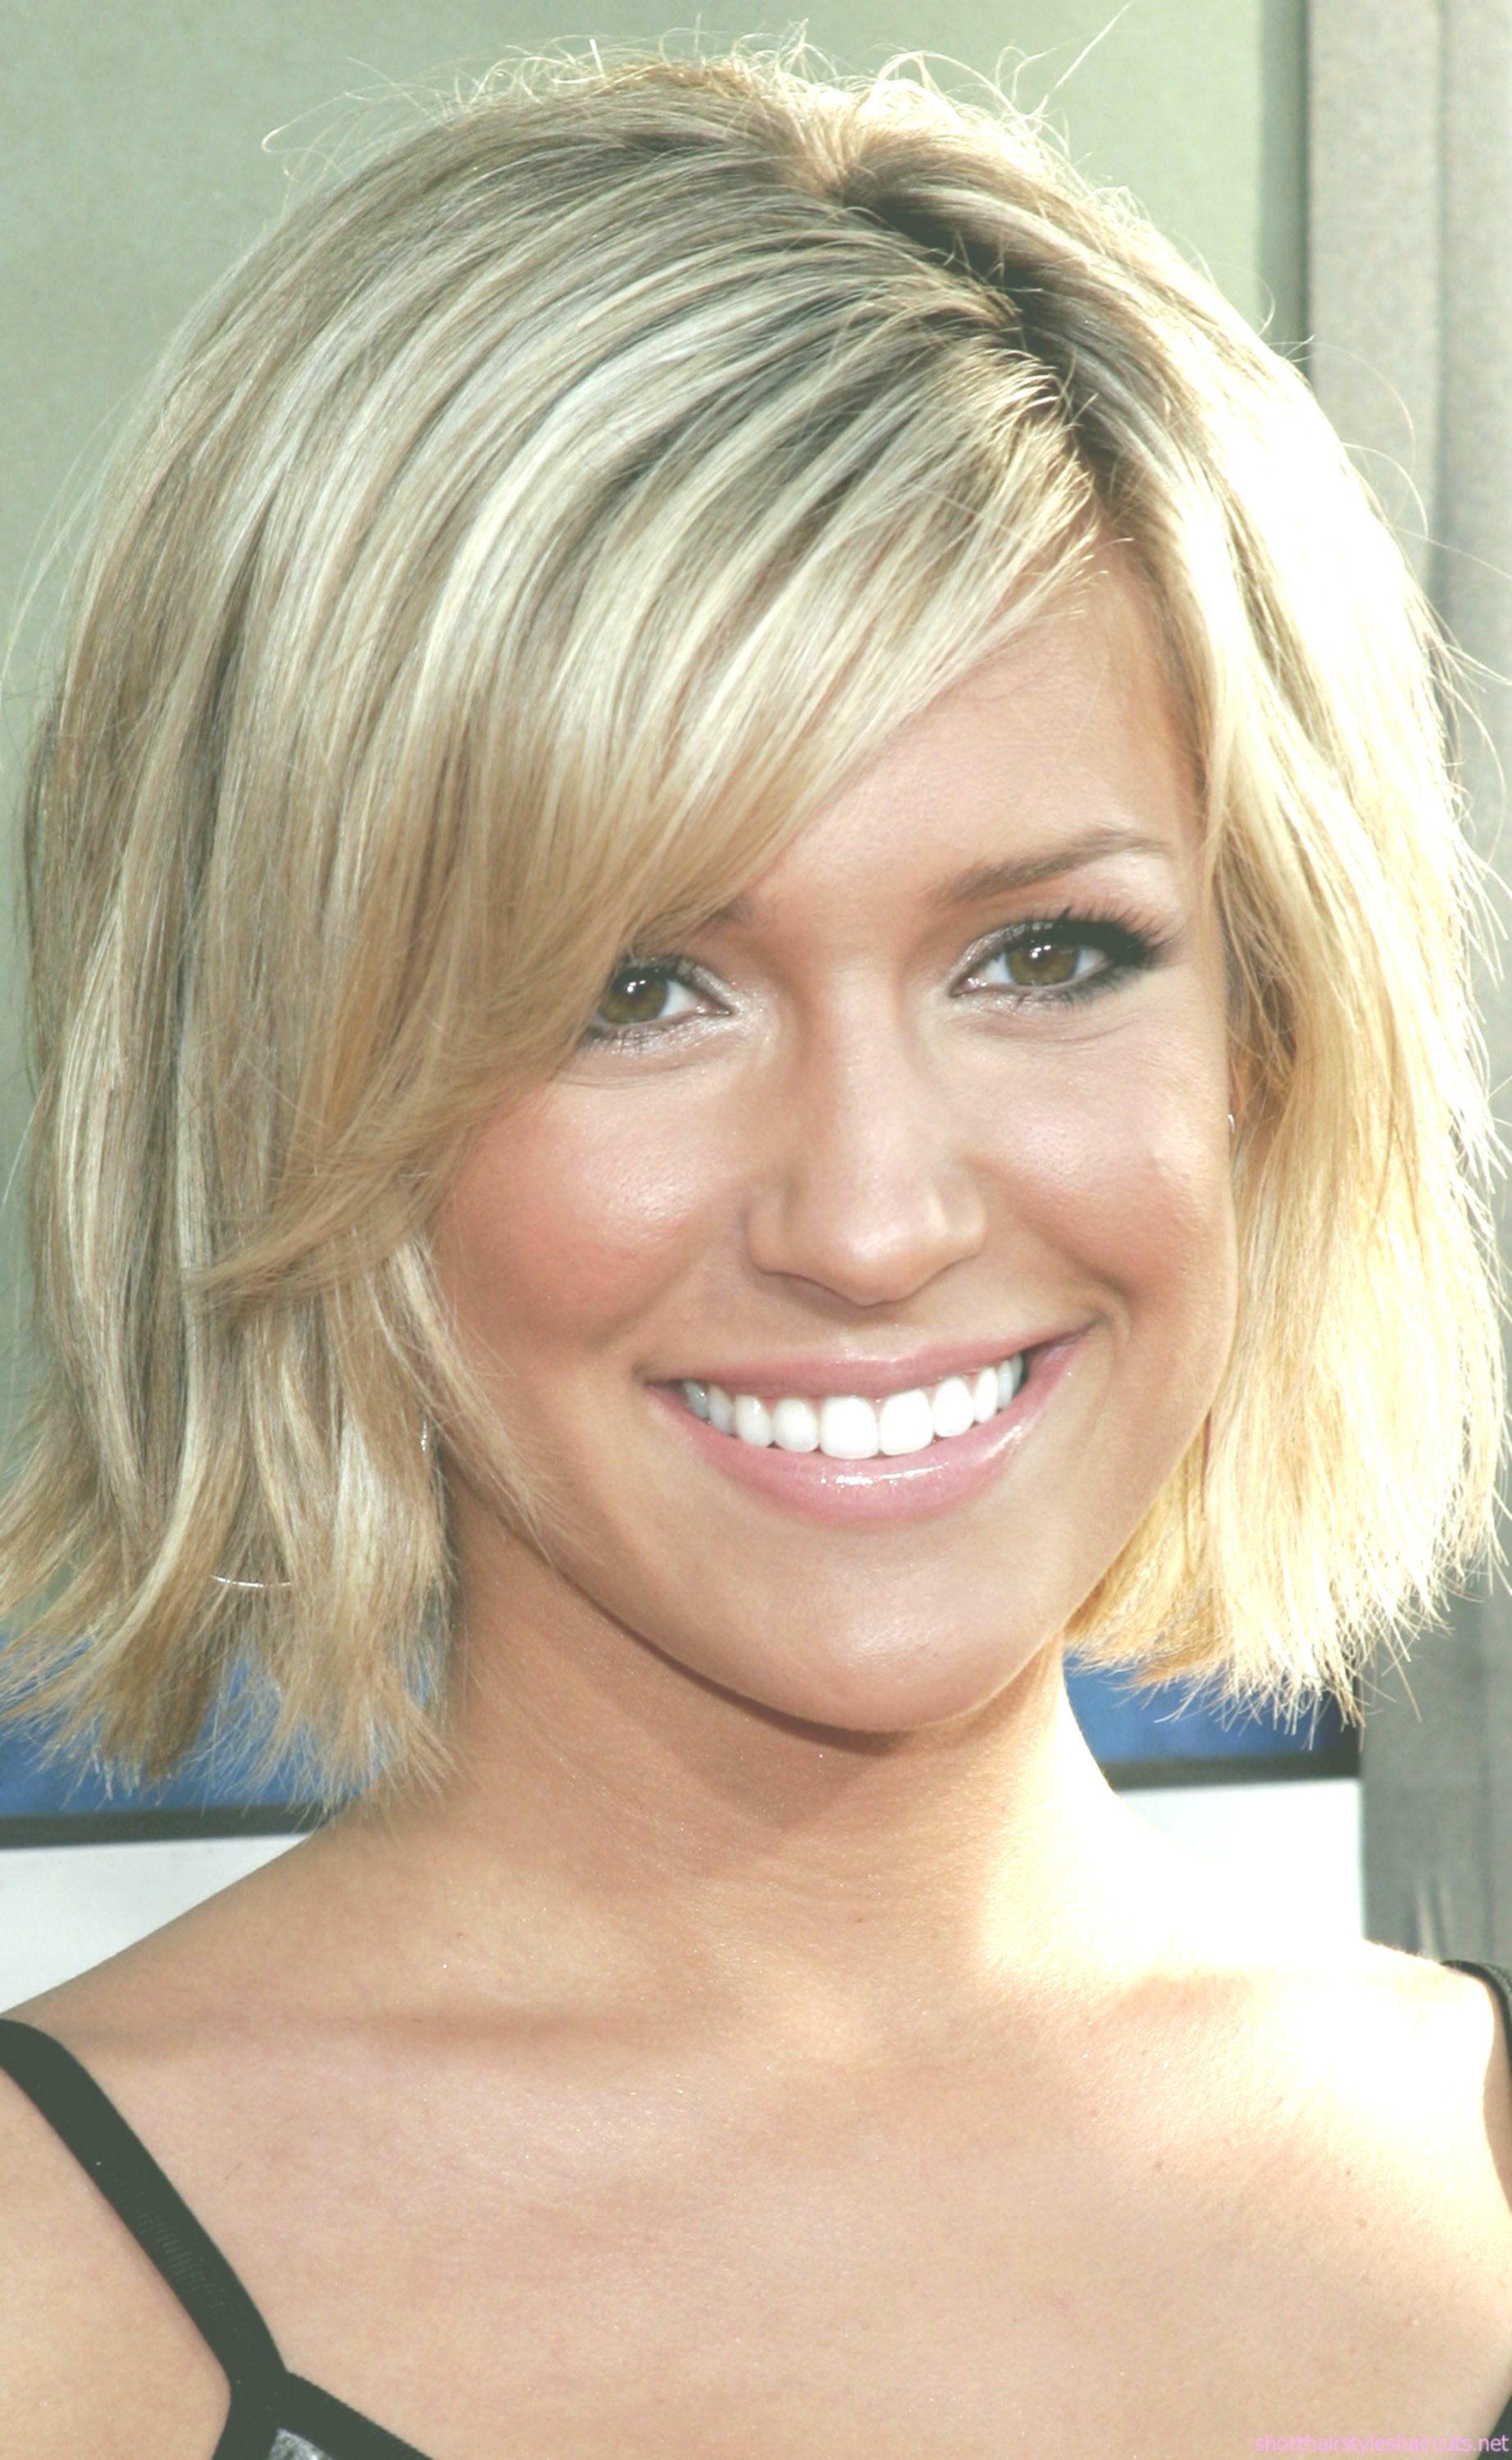 lovely blond hairstyles concept-Finest blond hairstyles photo